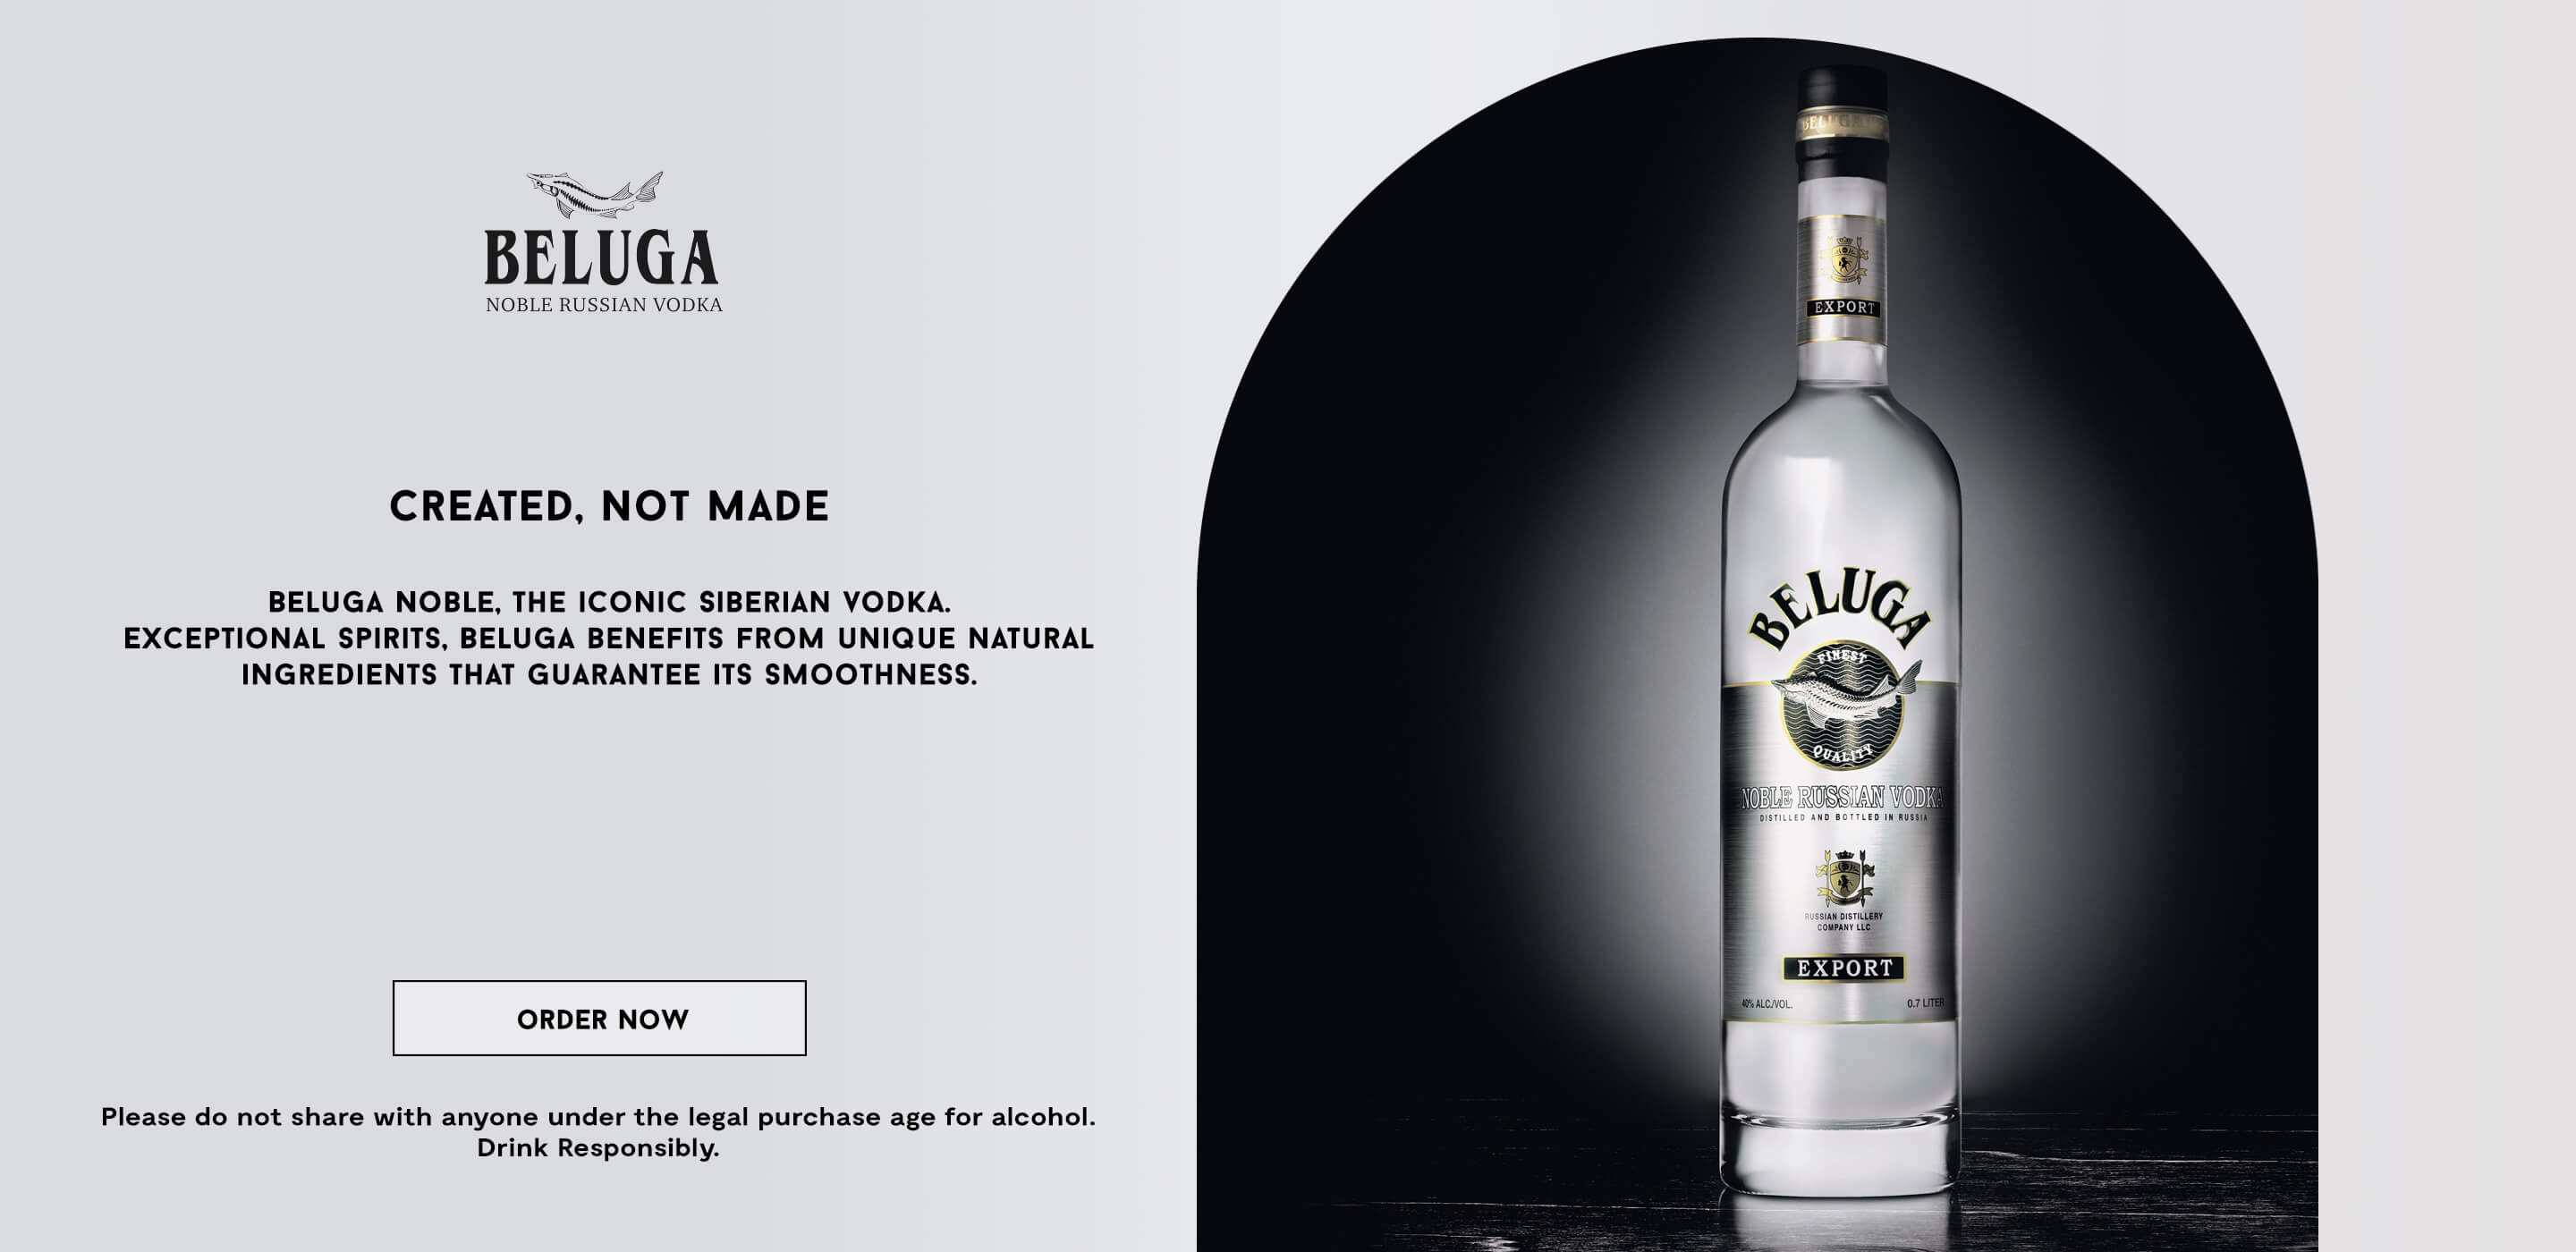 Banner of the new Beluga vodka collection